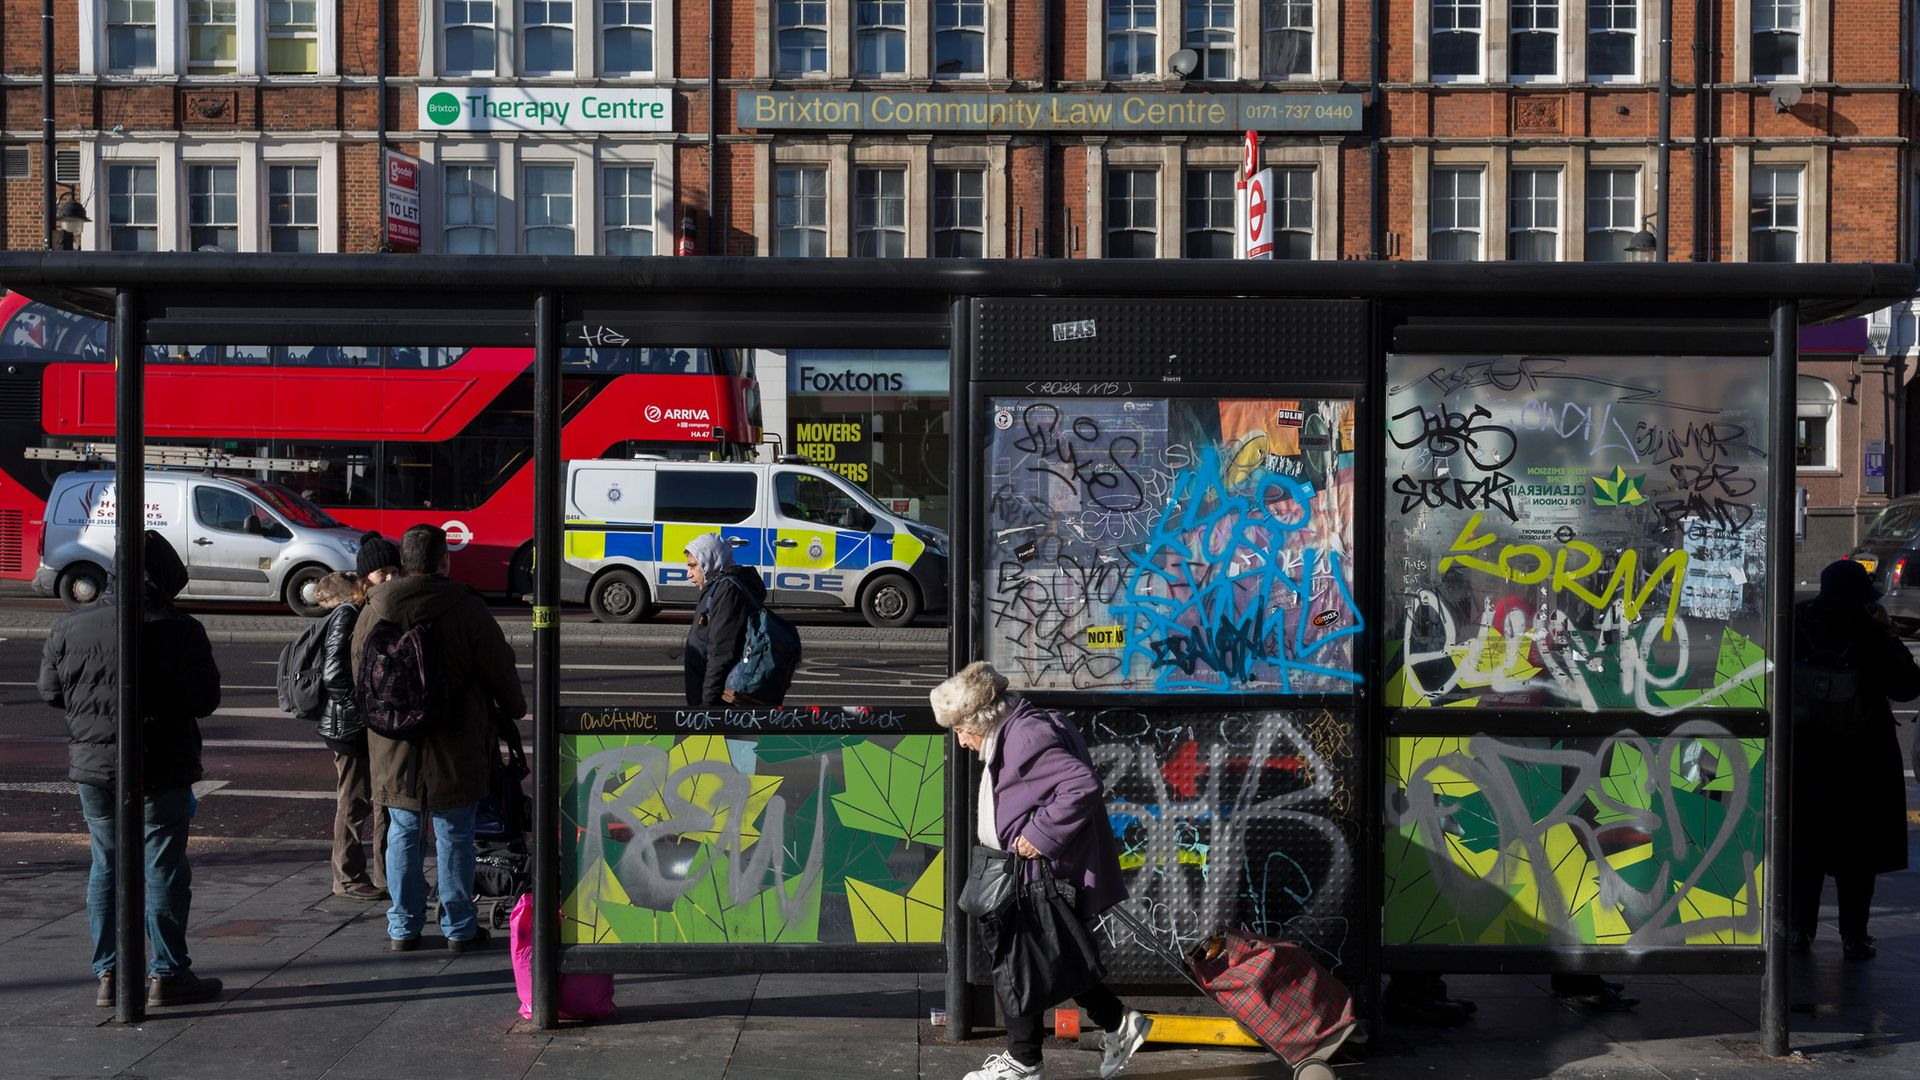 BUMPED OFF: A bus stop in Brixton near the spot where Will Self was knocked off his bike - Credit: In Pictures via Getty Images